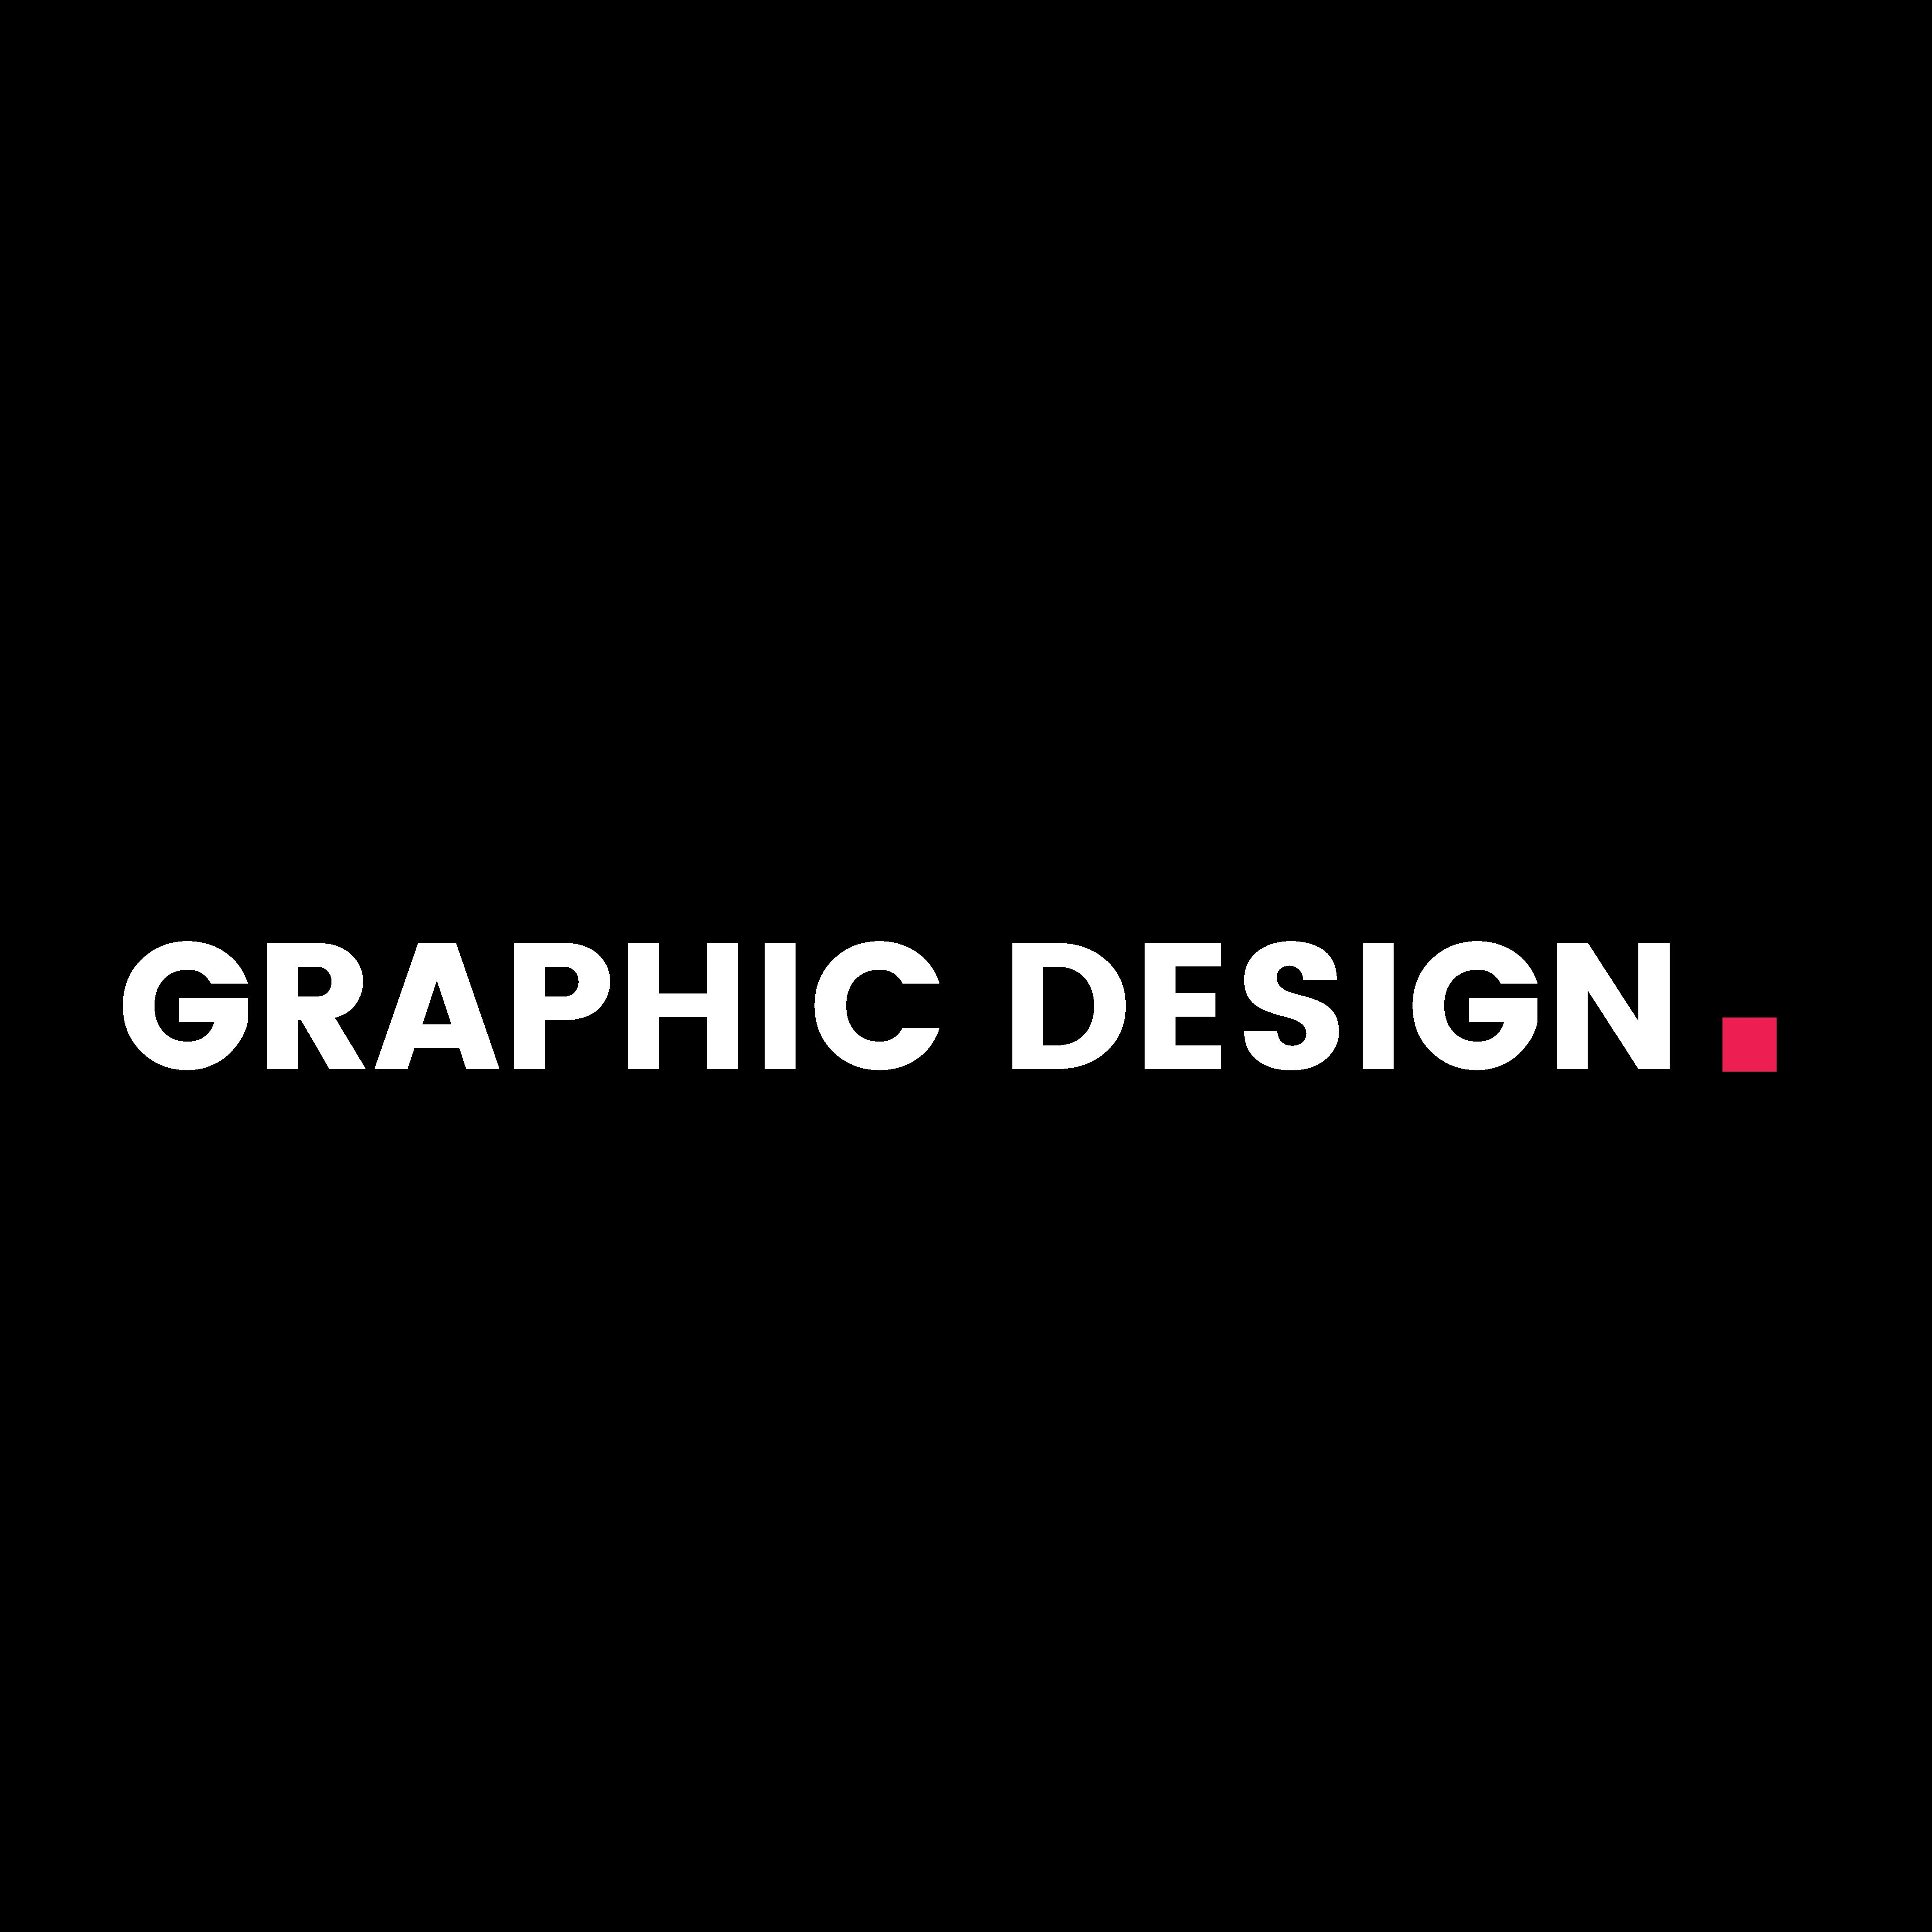 A Design Company Specialising In Web Design Graphic Design Web Marketing And Printing Based Web Design Quotes Web Design Website Design Services